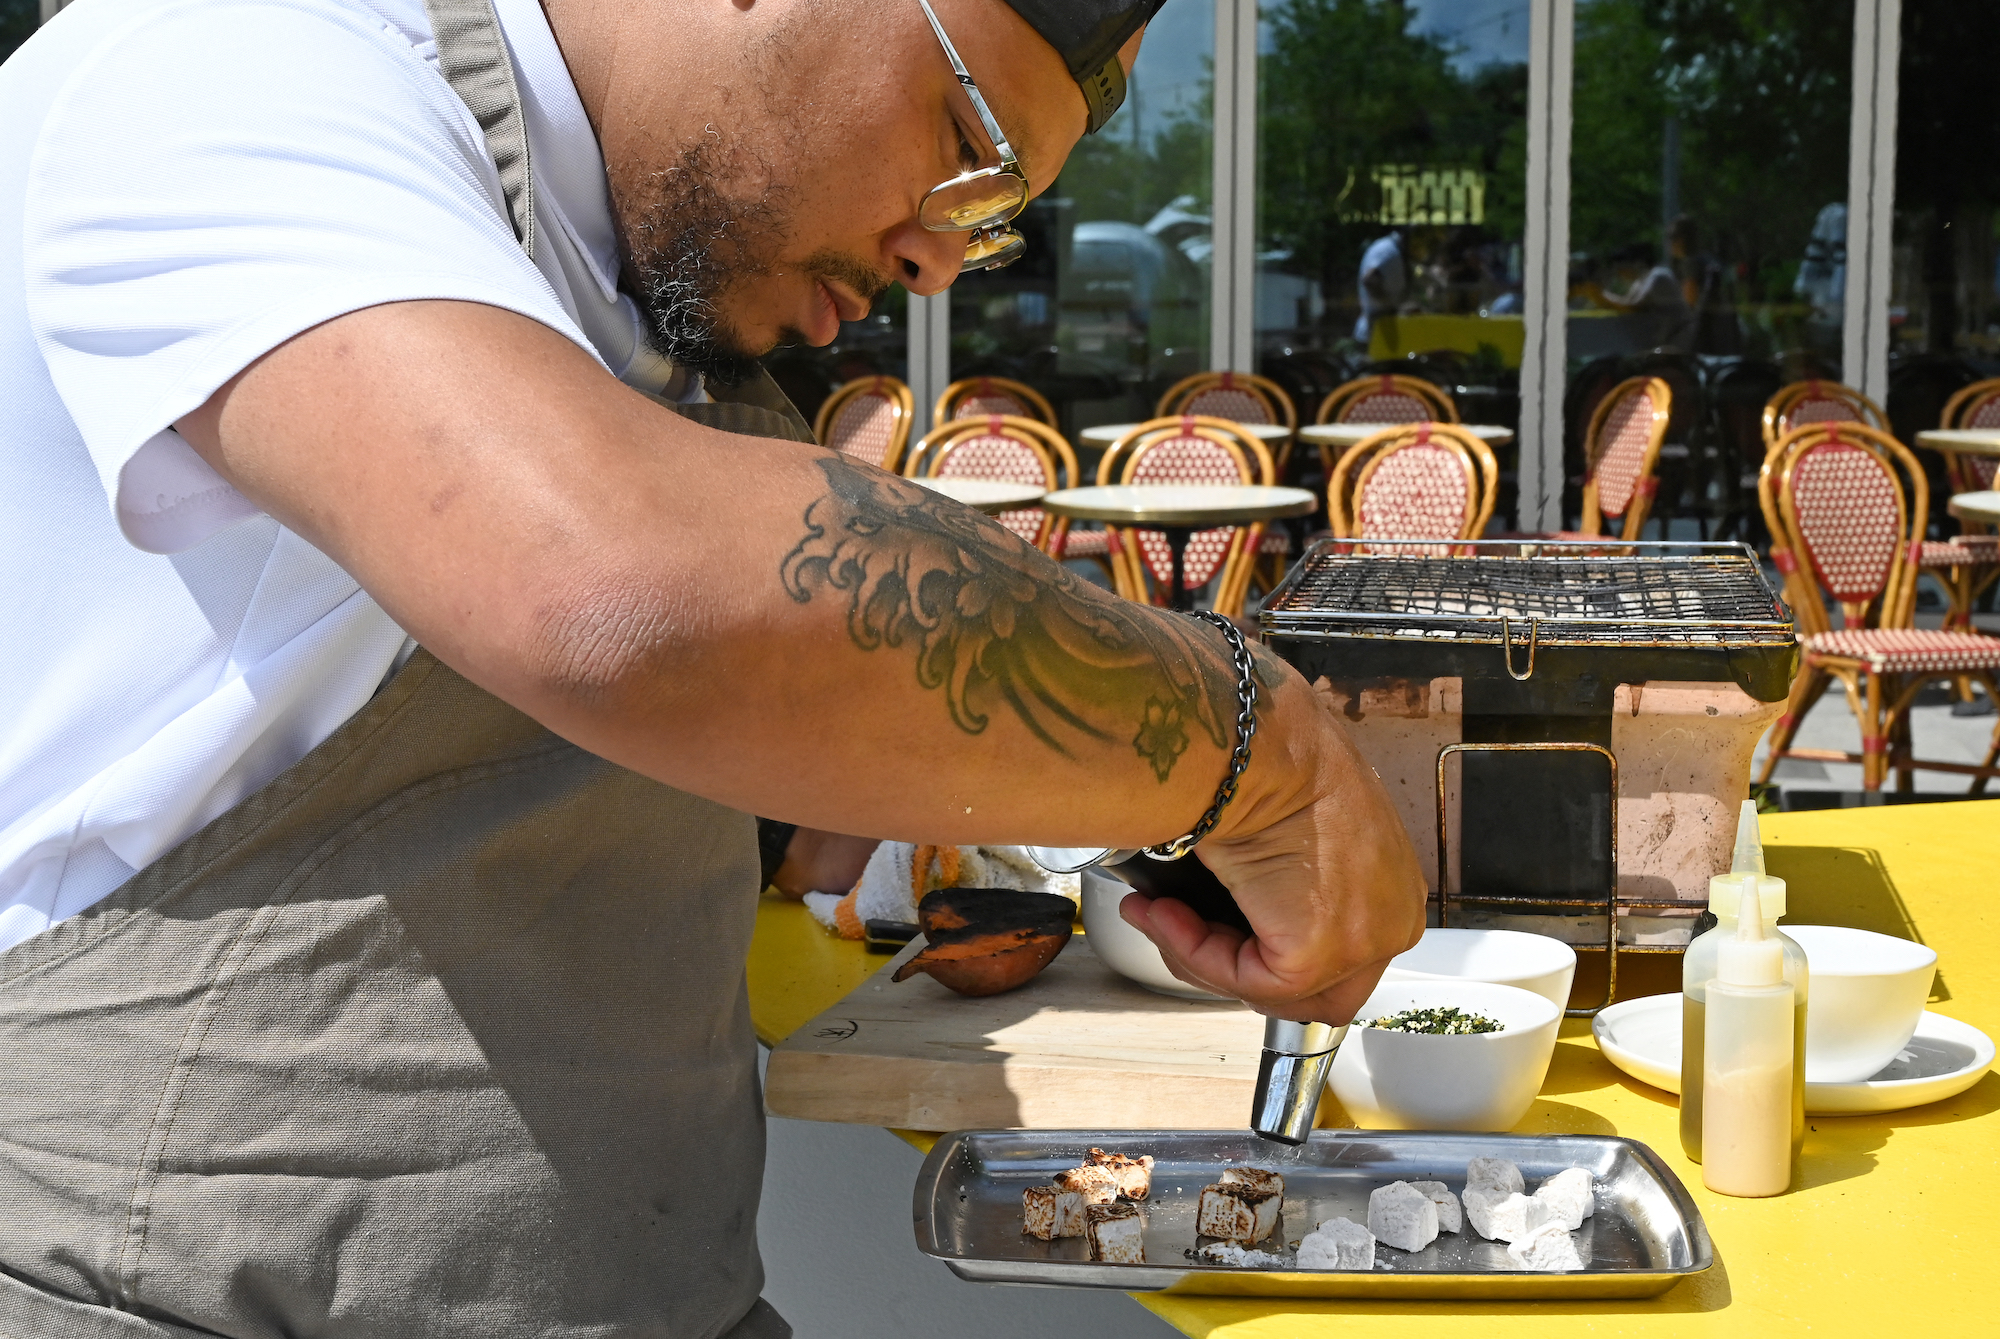 Executive chef Jerome Grant caramelizes anise spiced marshmallow before adding it to his dish of roasted sweet potato with collard furikake and sesame seed butter